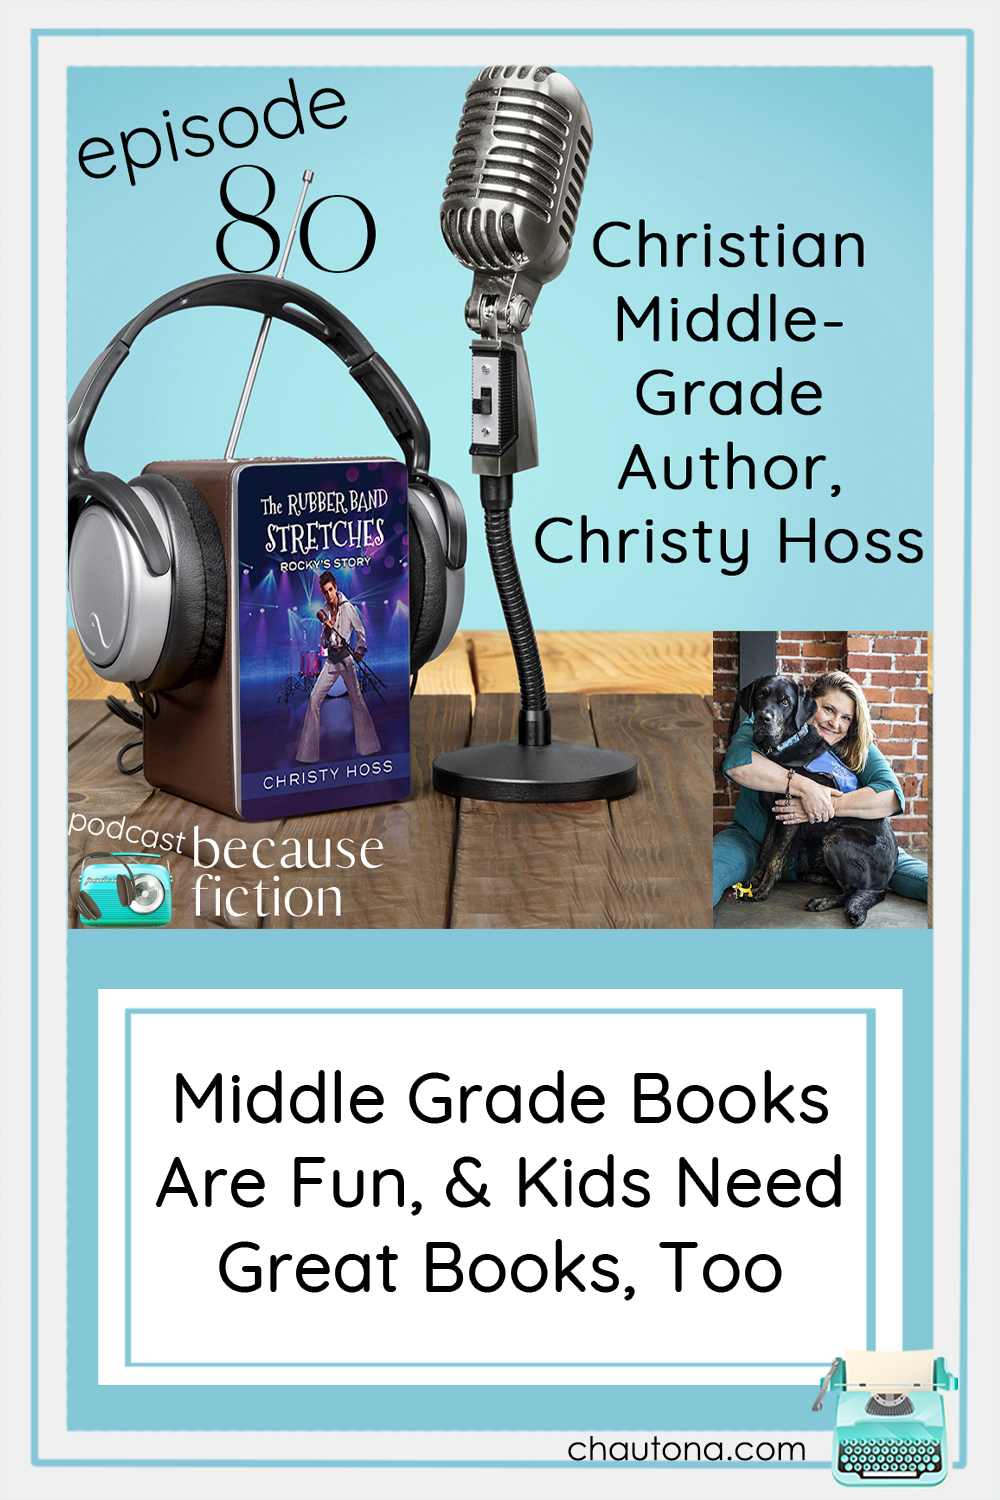 Middle-grade author, Christy Hoss, took inspiration from an actual third-grade rock band and wrote a fun and inspiring series for kids! via @chautonahavig